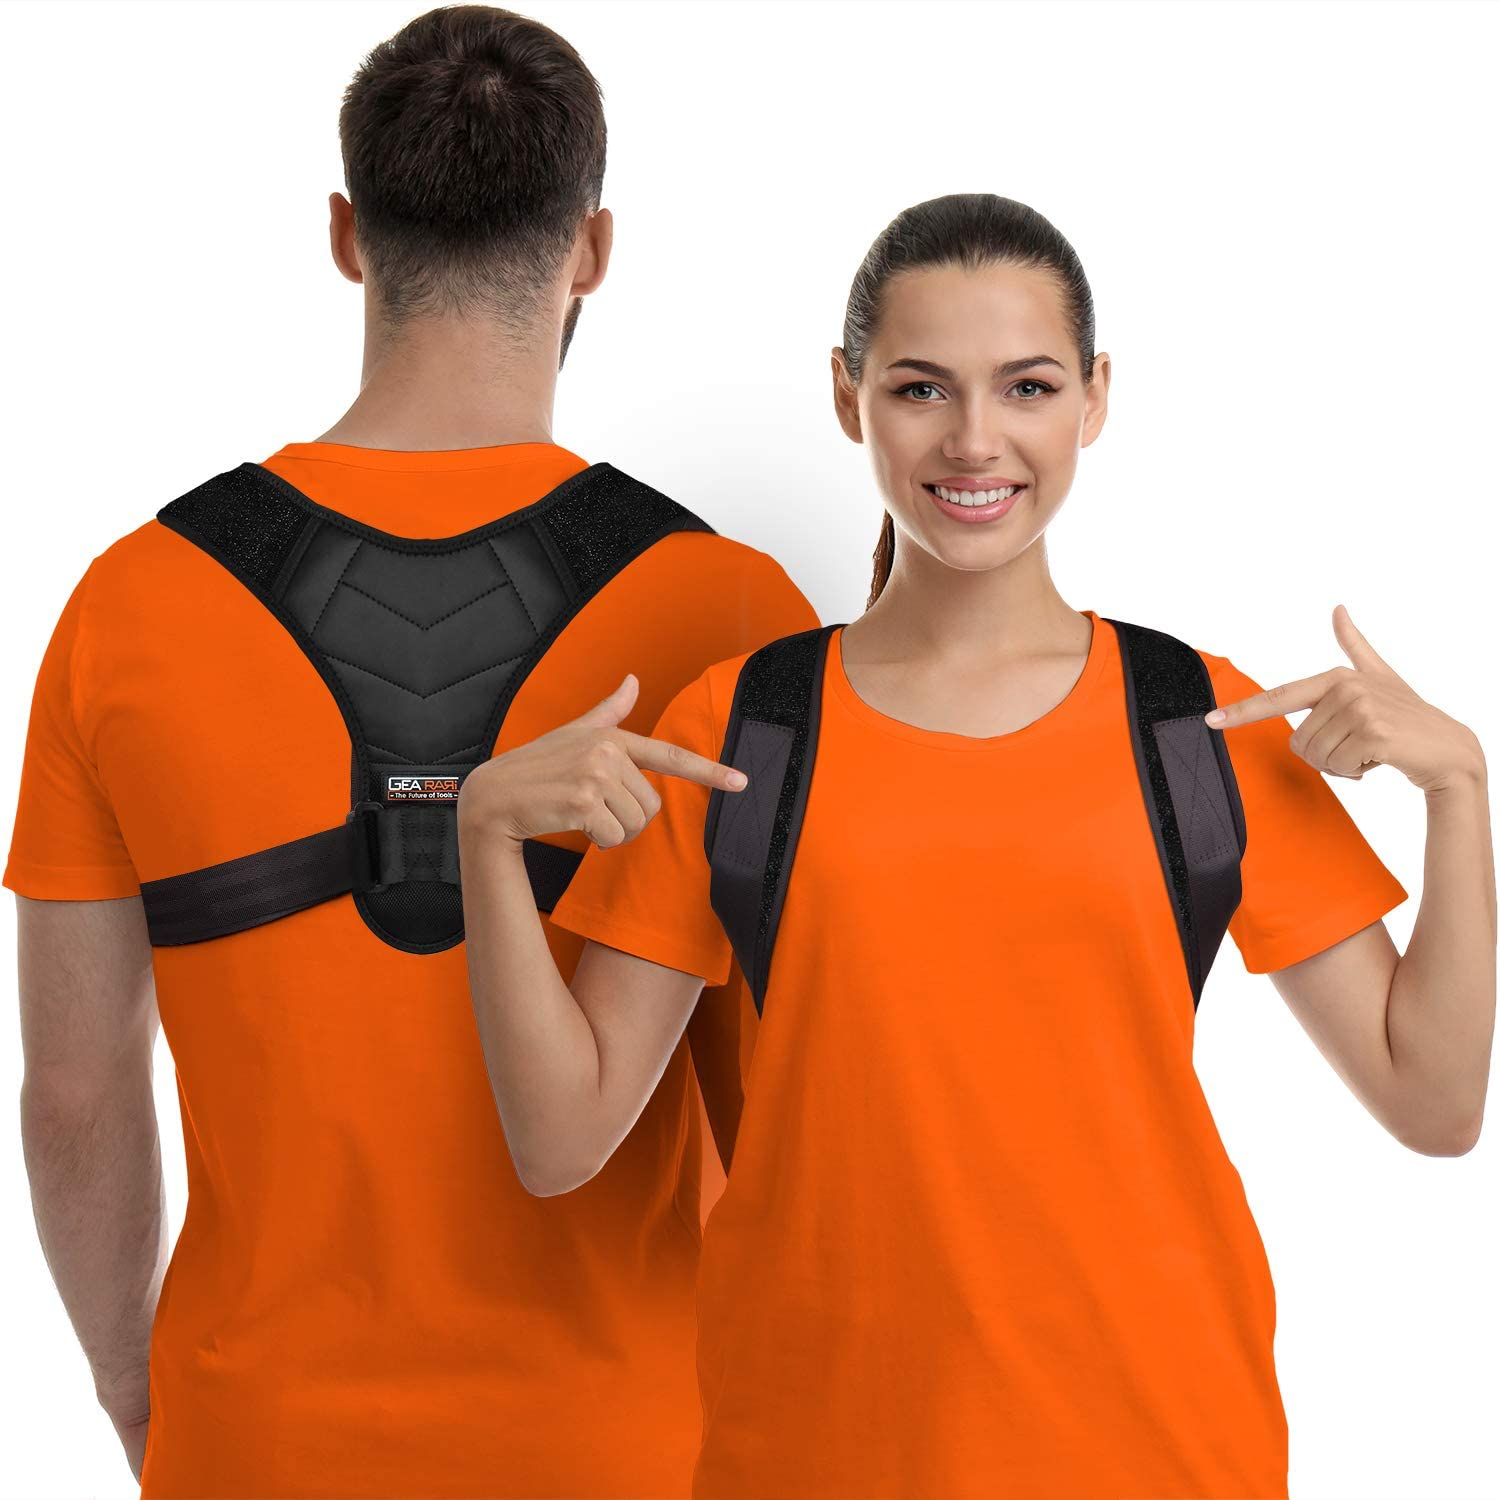 Physical Therapy for Gym Upper Back Brace for Clavicle Support Back /& Shoulder Adjustable Back Straightener and Providing Pain Relief from Neck Yoga Posture Corrector for Men and Women